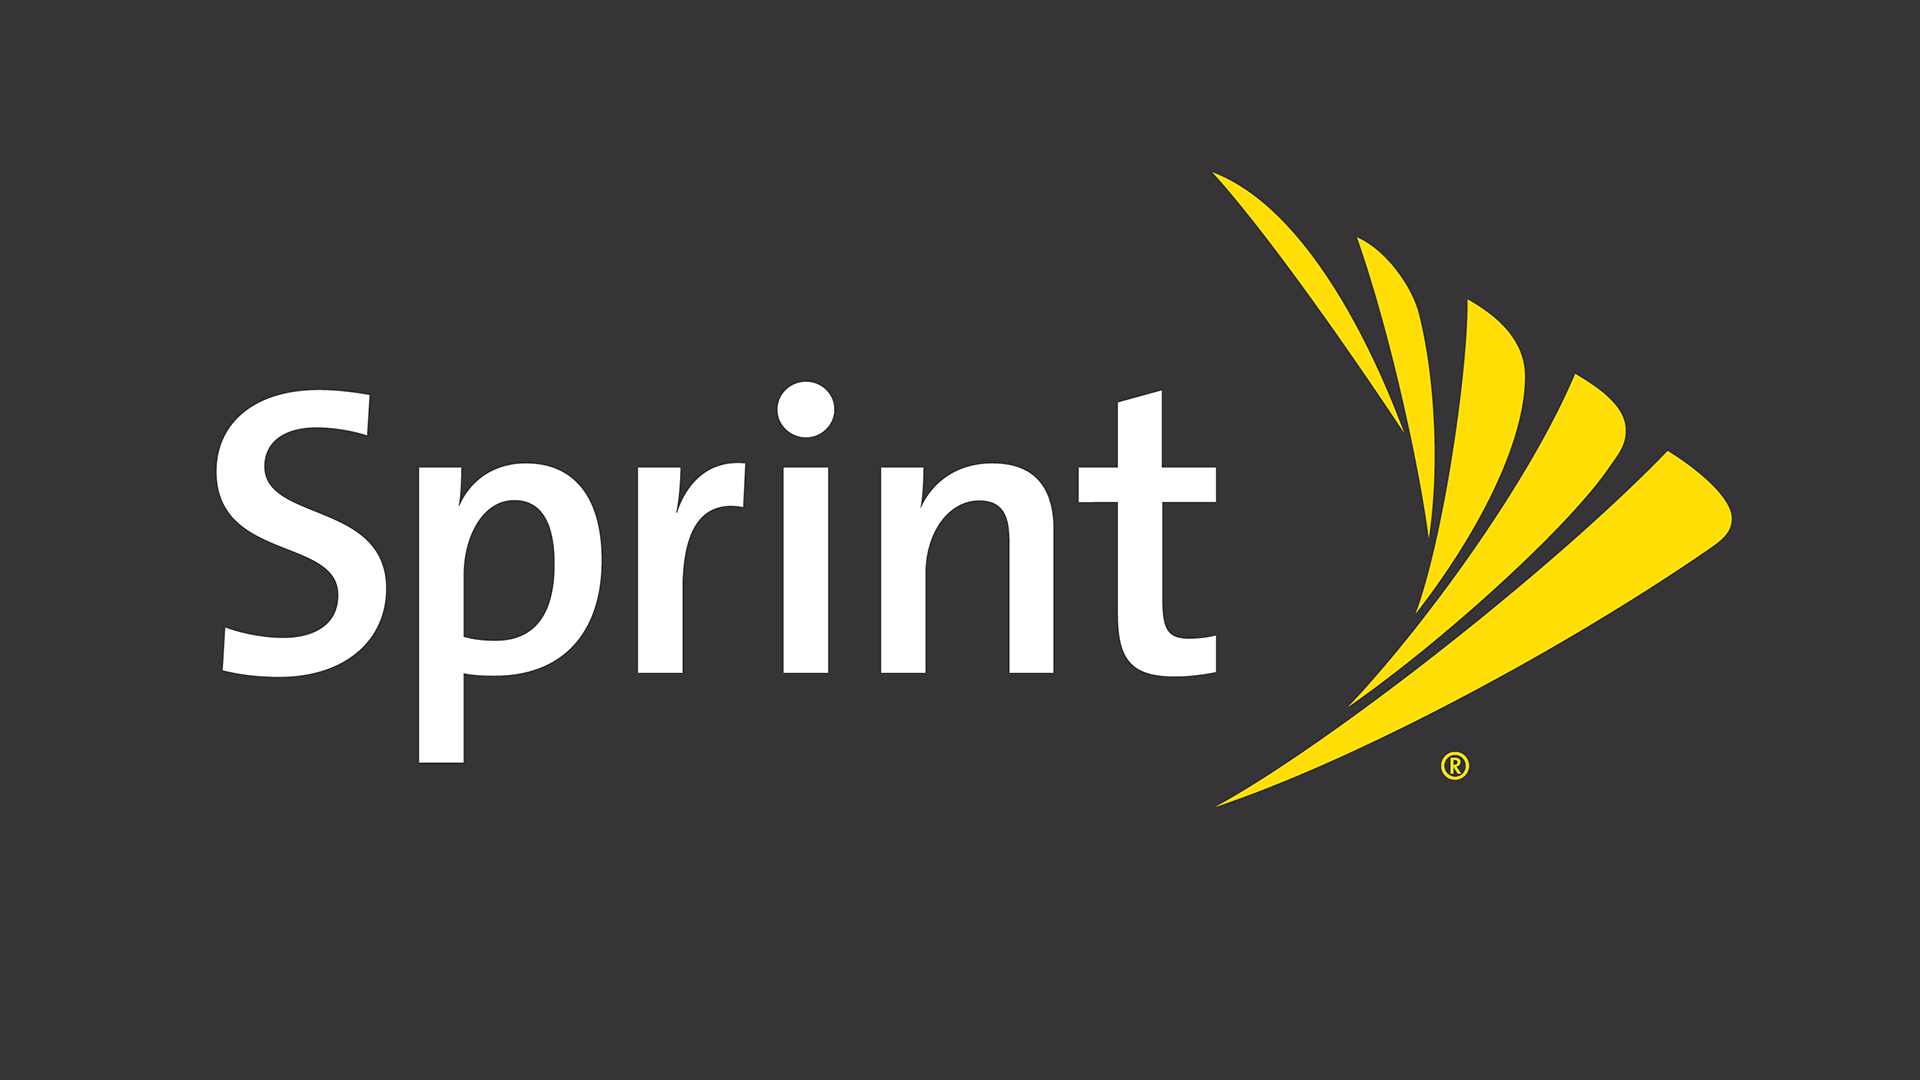 Sprint_White_Fin_Yellow